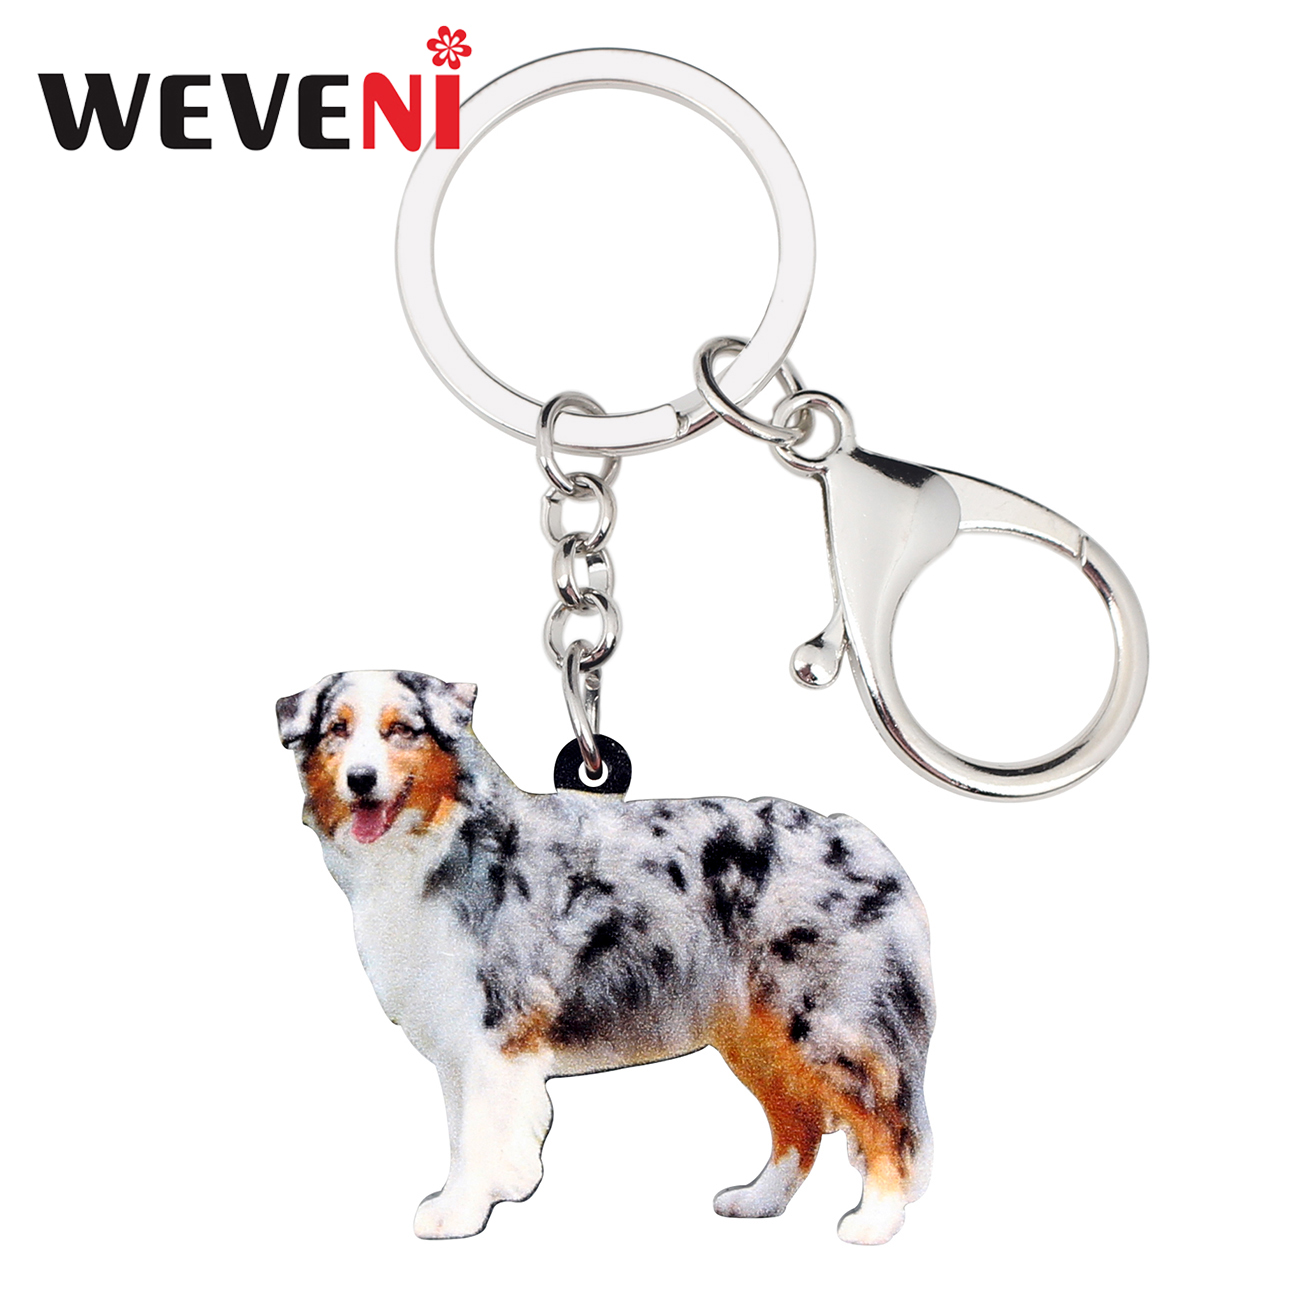 WEVENI Acrylic Australian Shepherd Dog Key Chains Keychains Holder Animal Jewelry For Women Girls Bag Car Wallet Charms Pendant